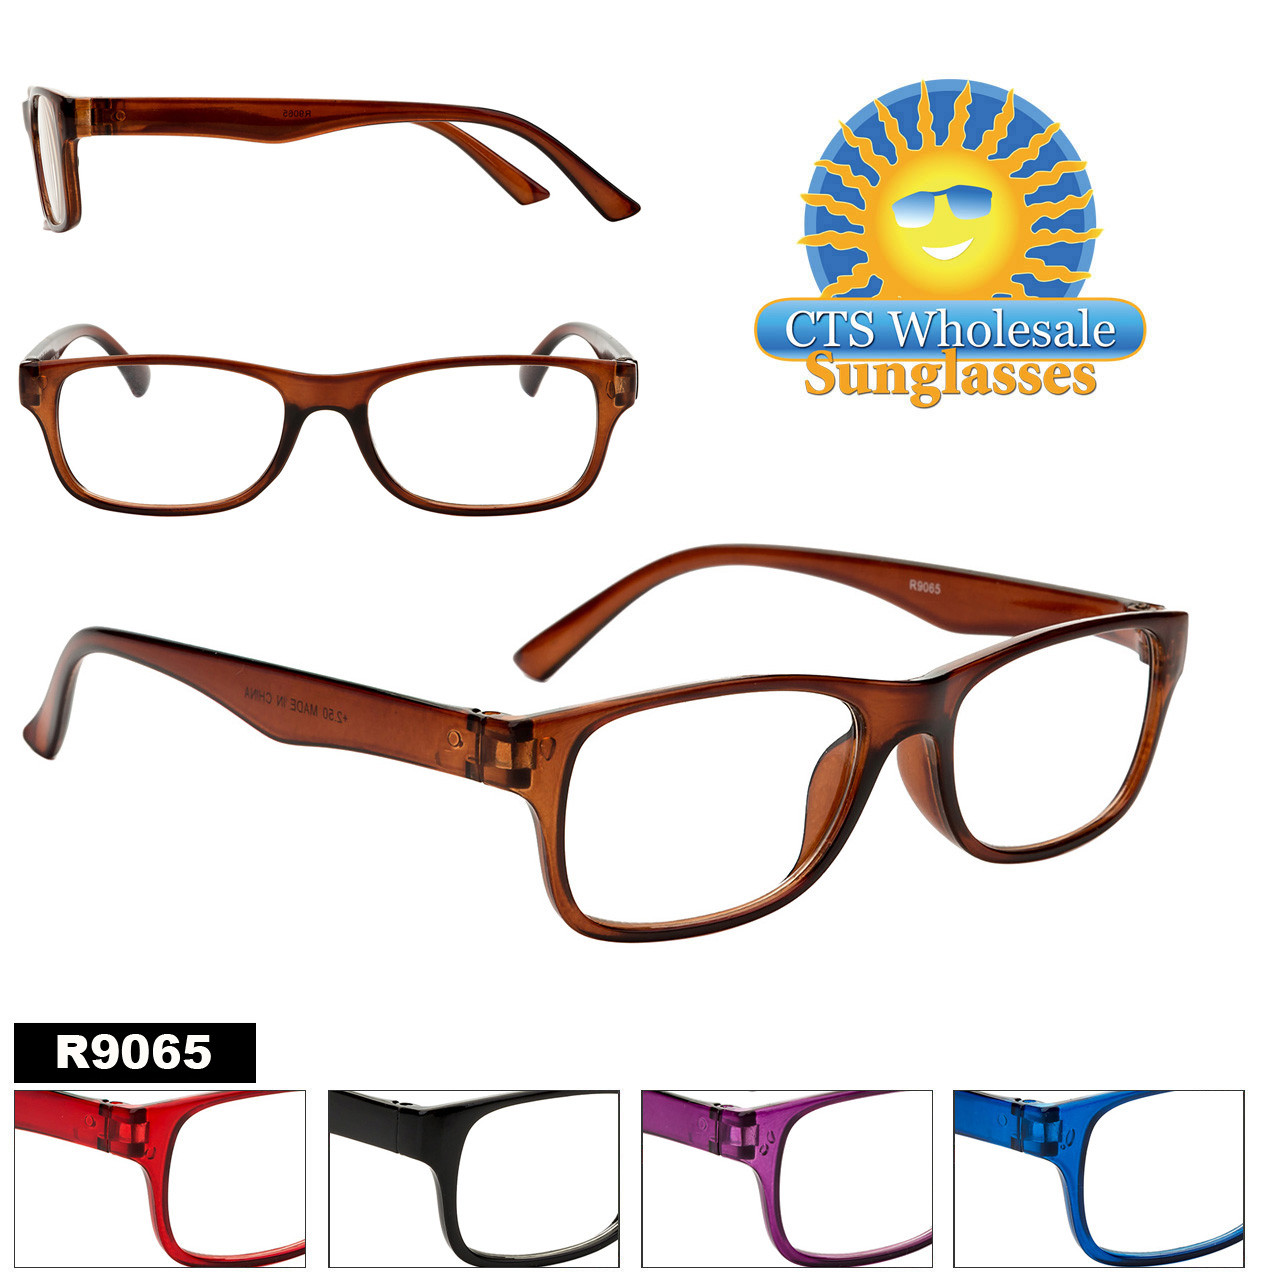 Wholesale Reading Glasses - R9065